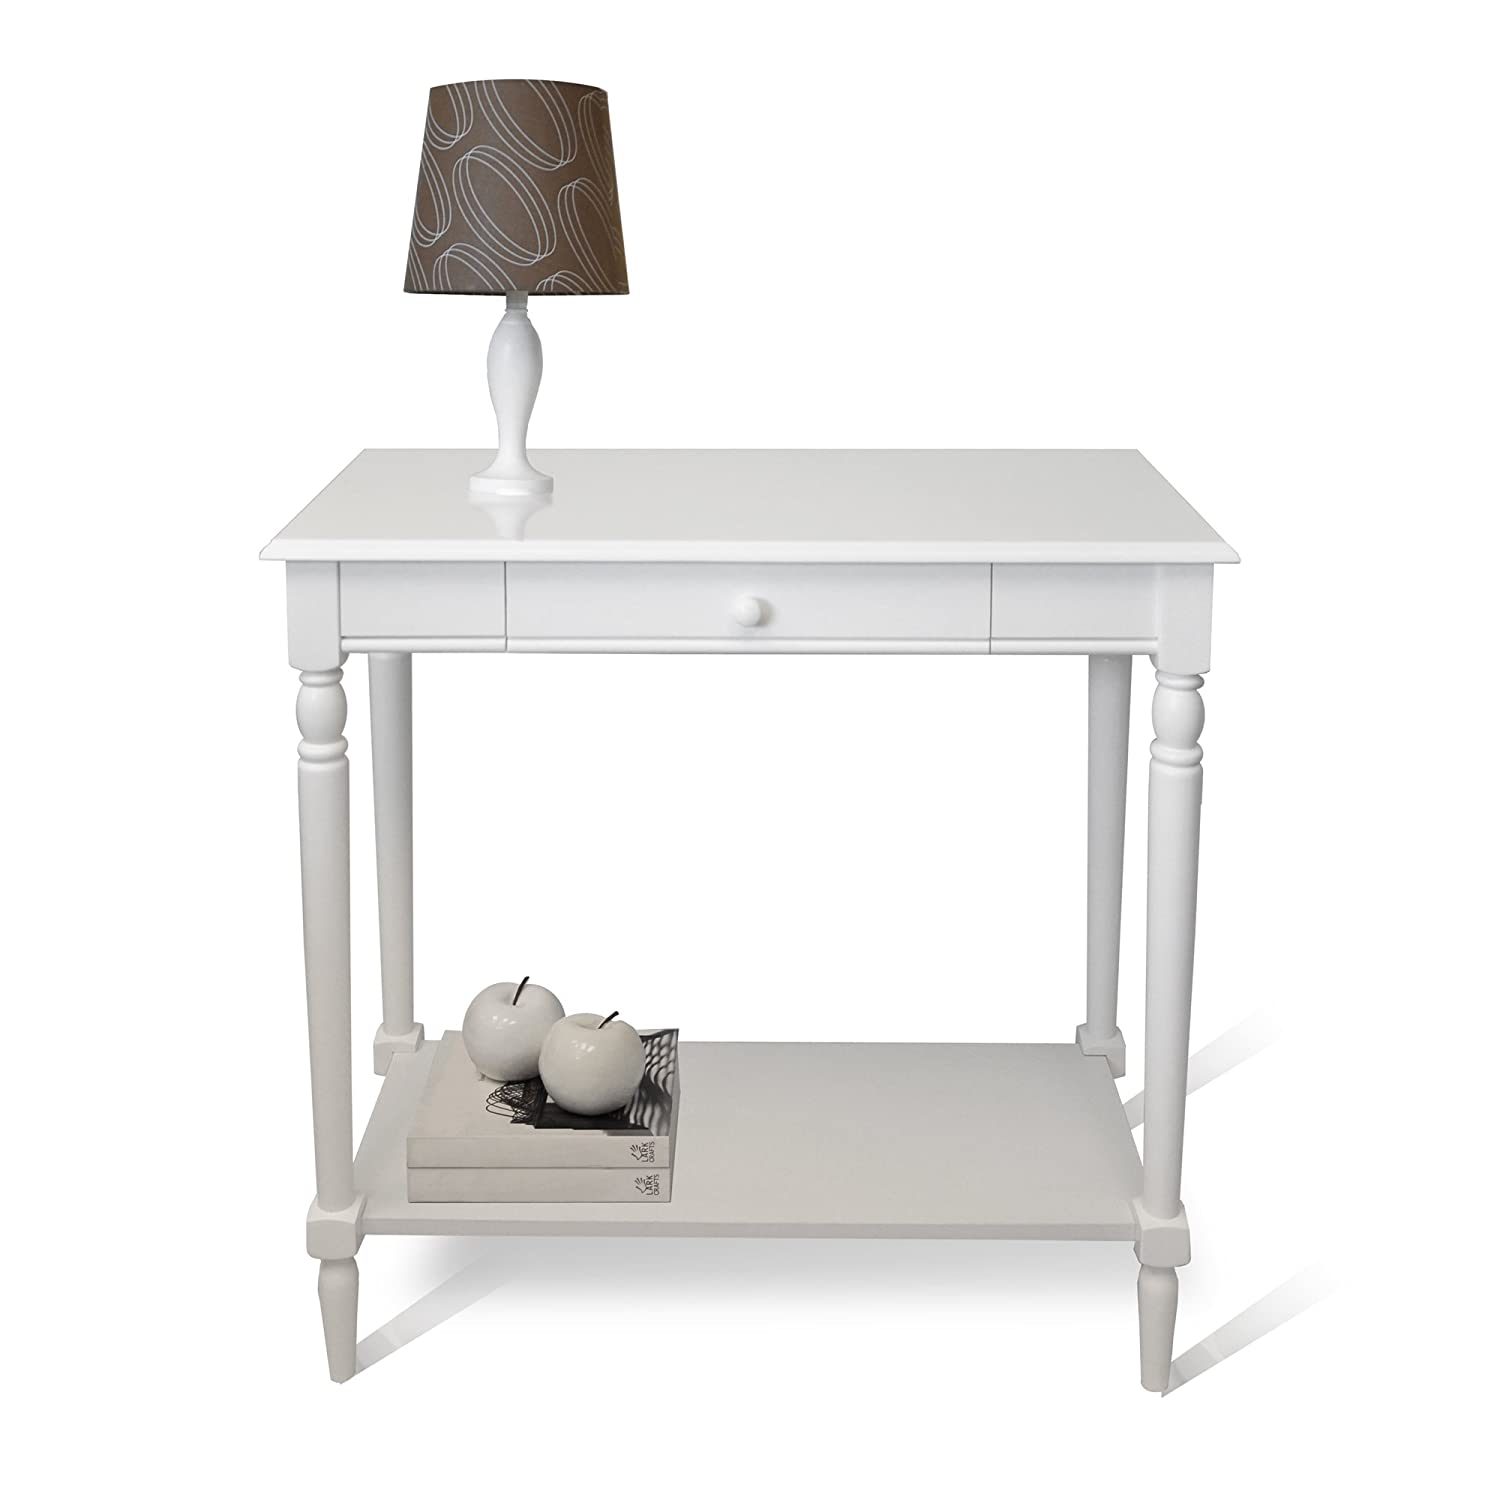 amazoncom convenience concepts french country hall table with drawer and shelf white kitchen u0026 dining - Cheap Console Tables